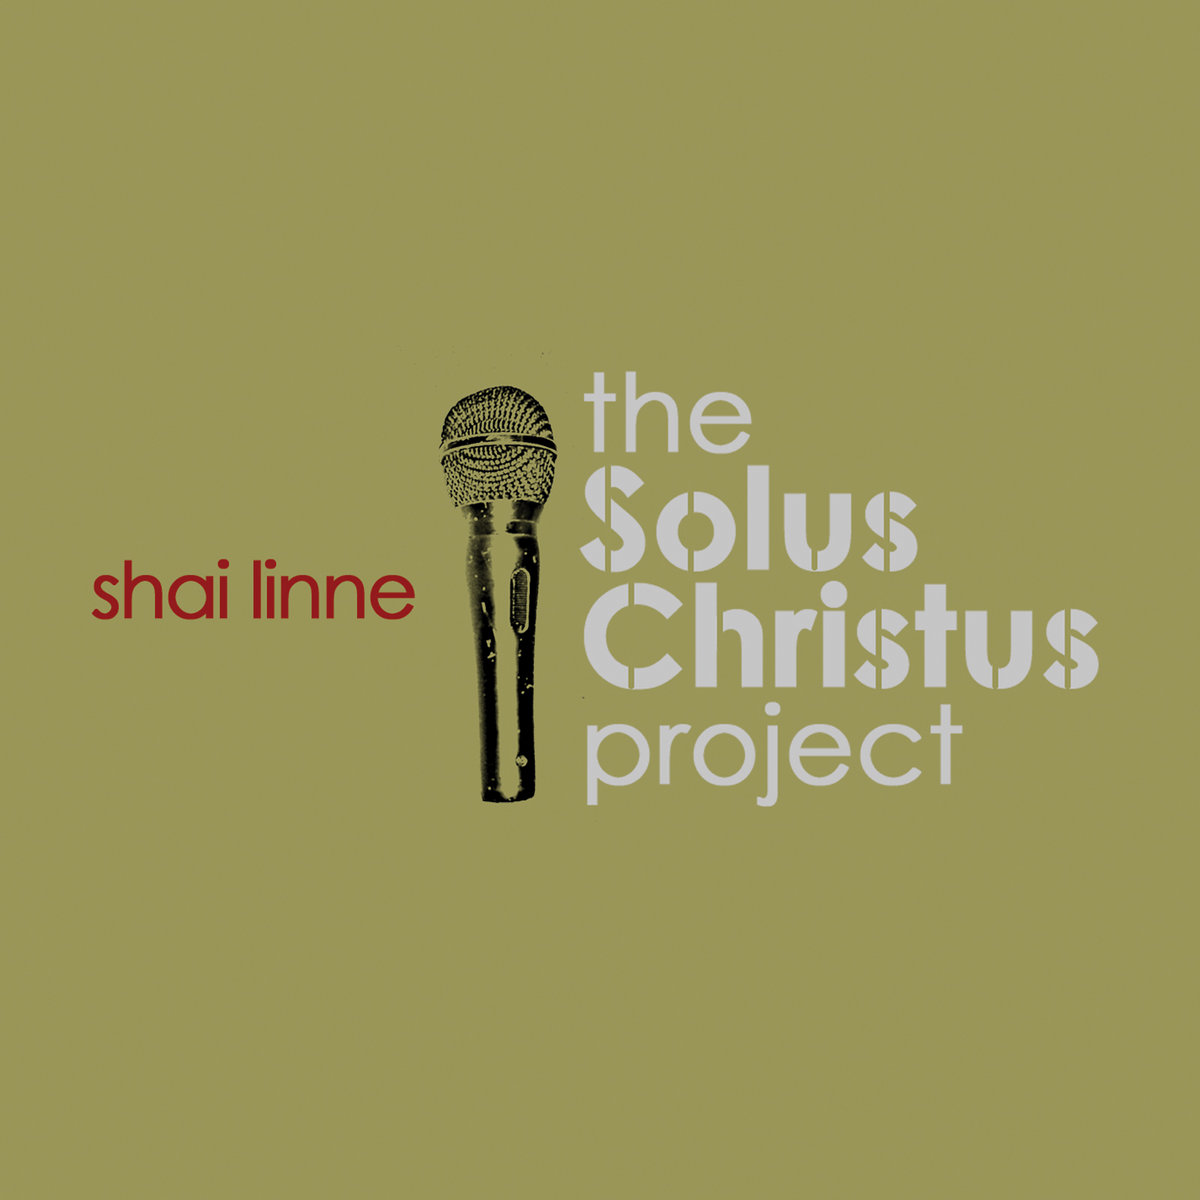 The Solus Christus Project Lamp Mode Recordings